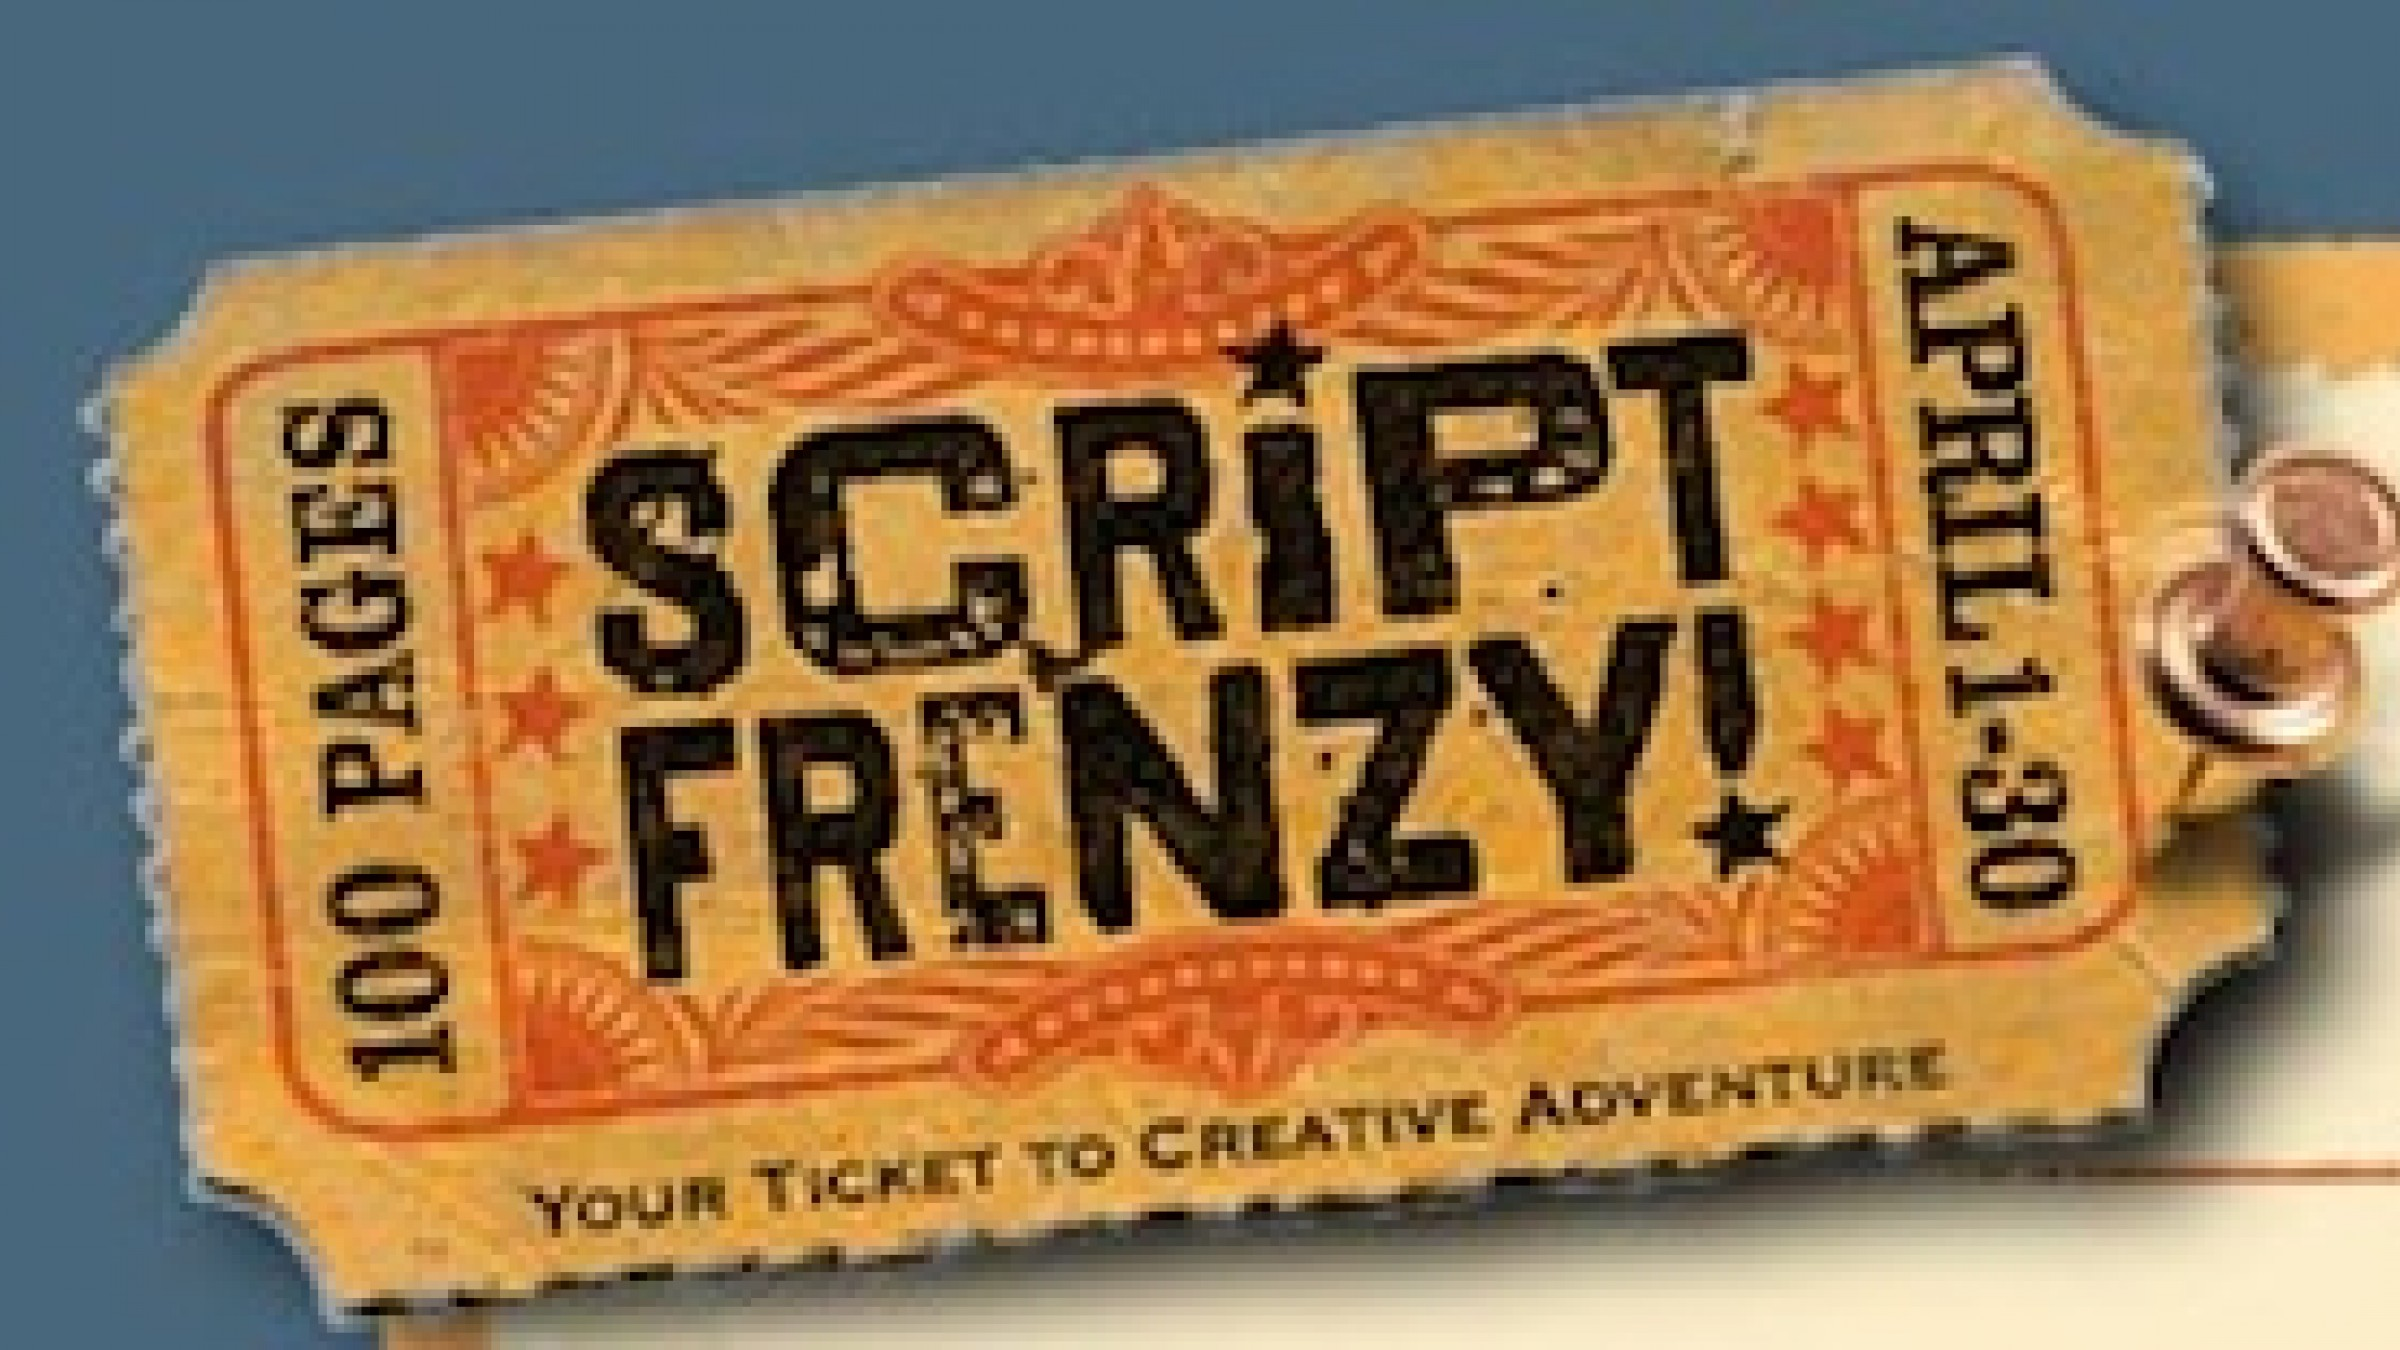 How to Participate in Script Frenzy advise